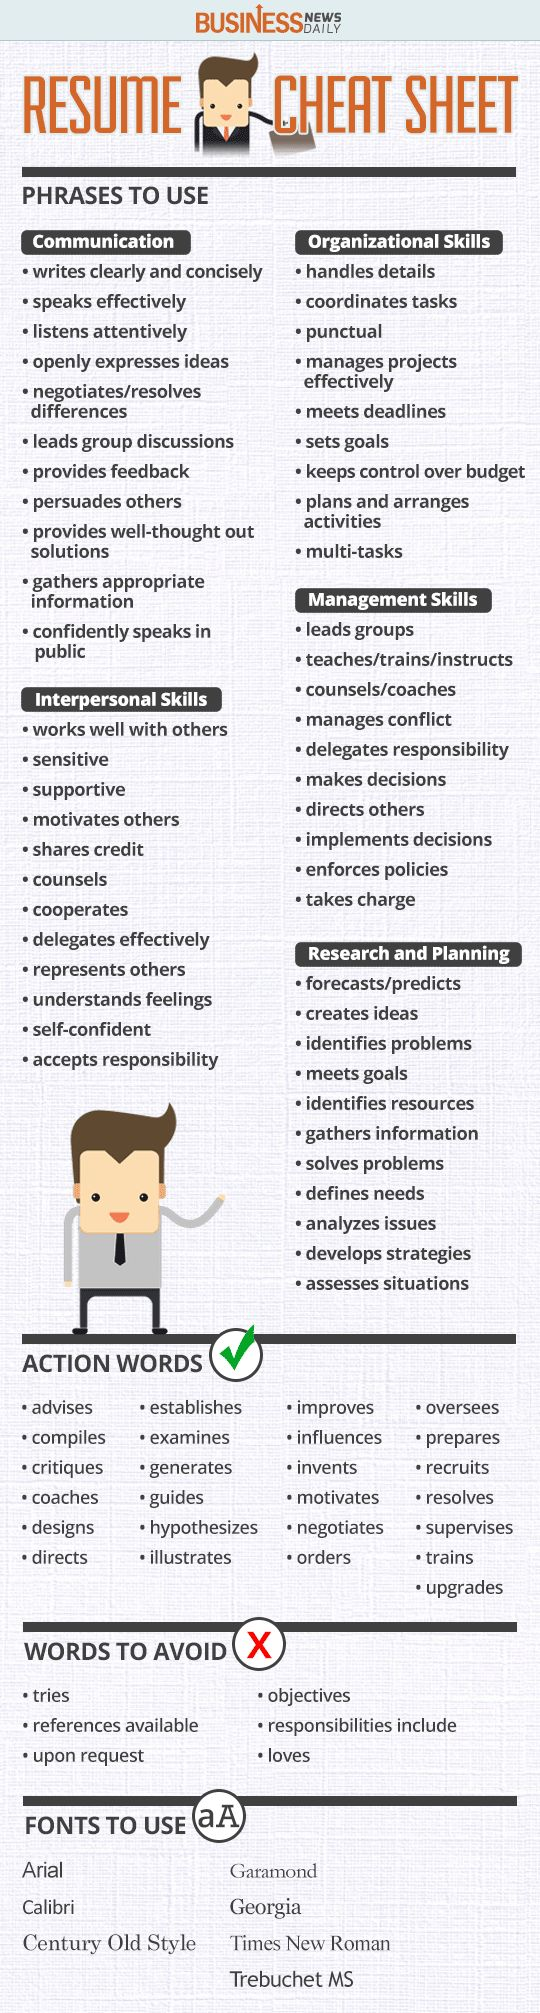 Opposenewapstandardsus  Unusual  Ideas About Resume On Pinterest  Cv Format Resume Cv And  With Glamorous Resume Cheat Sheet Infographic Andrews Almost Done With A Complete Unit On Employment Which With Divine Resume For Construction Project Manager Also My Personal Resume In Addition Writing A College Resume And Proofreader Resume As Well As Cosmetology Resume Objective Additionally Research Assistant Resume Sample From Pinterestcom With Opposenewapstandardsus  Glamorous  Ideas About Resume On Pinterest  Cv Format Resume Cv And  With Divine Resume Cheat Sheet Infographic Andrews Almost Done With A Complete Unit On Employment Which And Unusual Resume For Construction Project Manager Also My Personal Resume In Addition Writing A College Resume From Pinterestcom